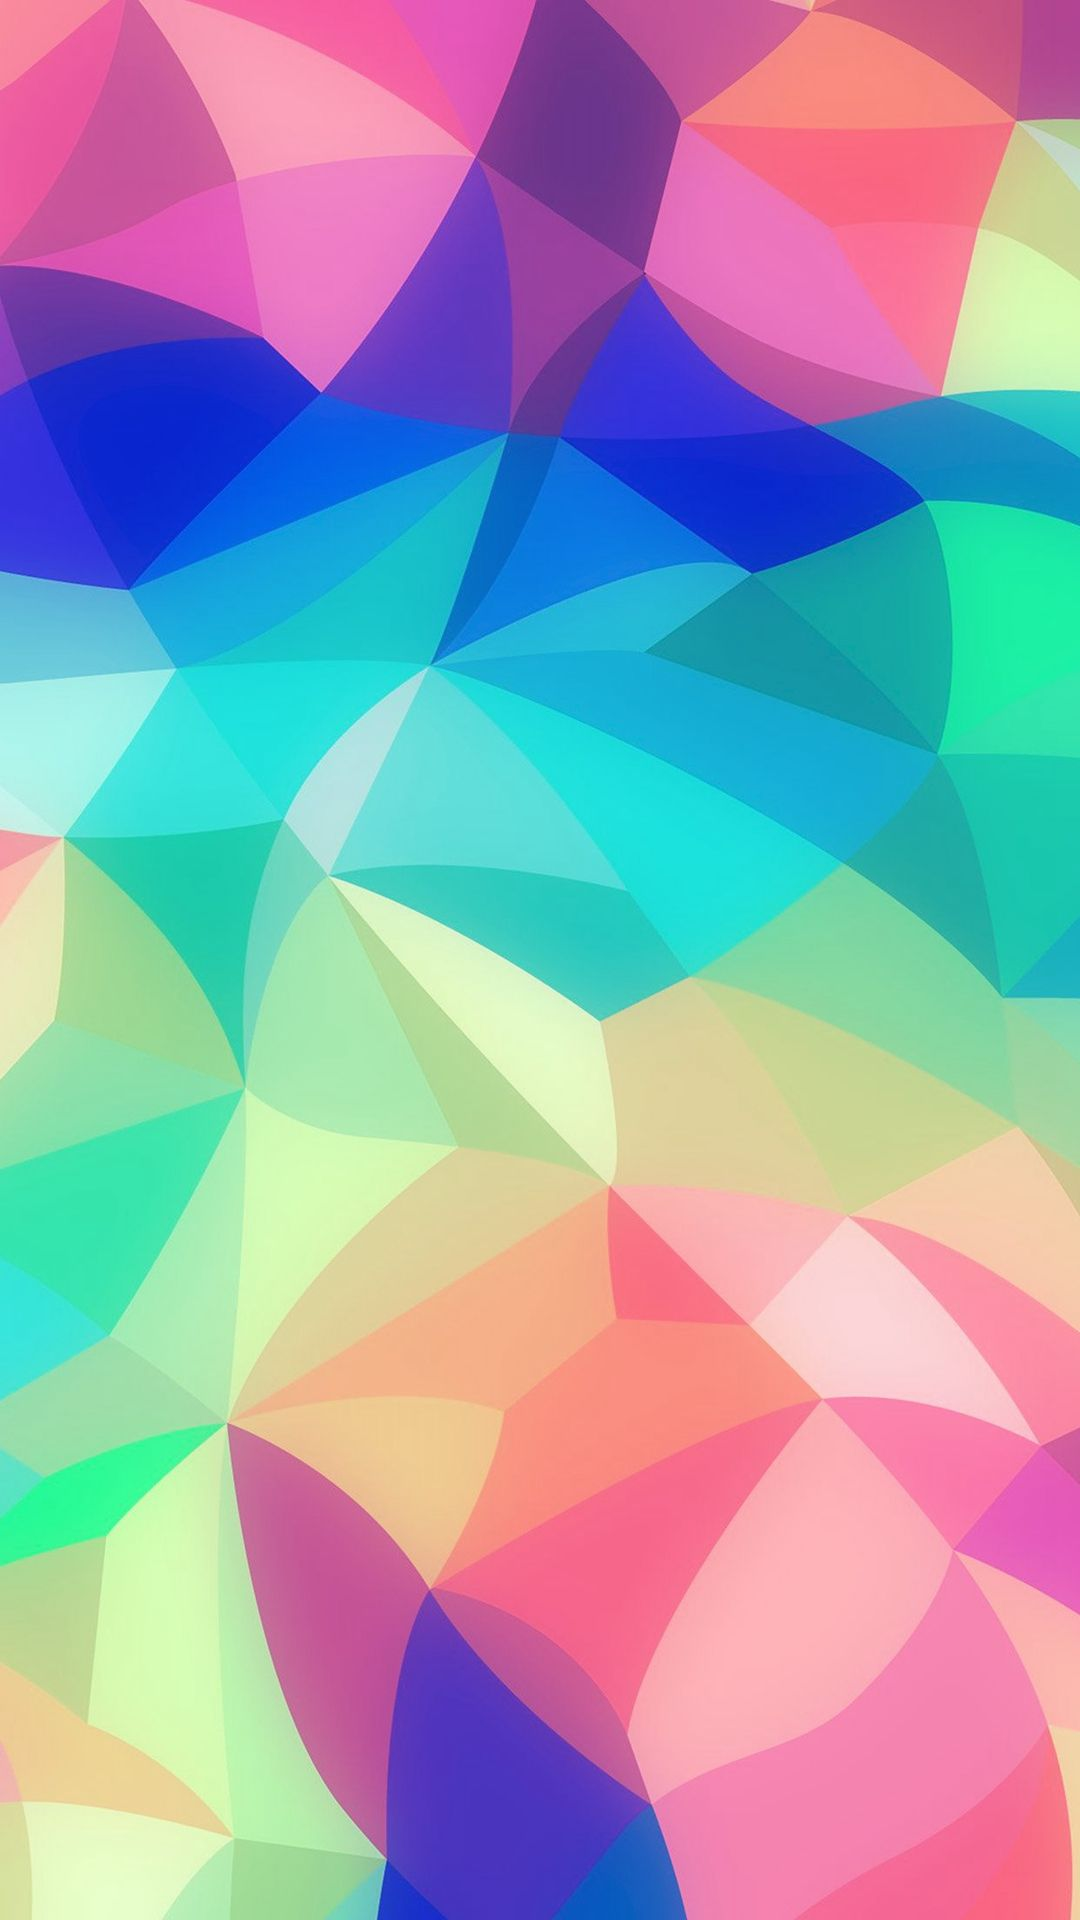 Wallpaper iphone soft - Rainbow Abstract Colors Pastel Soft Pattern Iphone 6 Plus Wallpaper